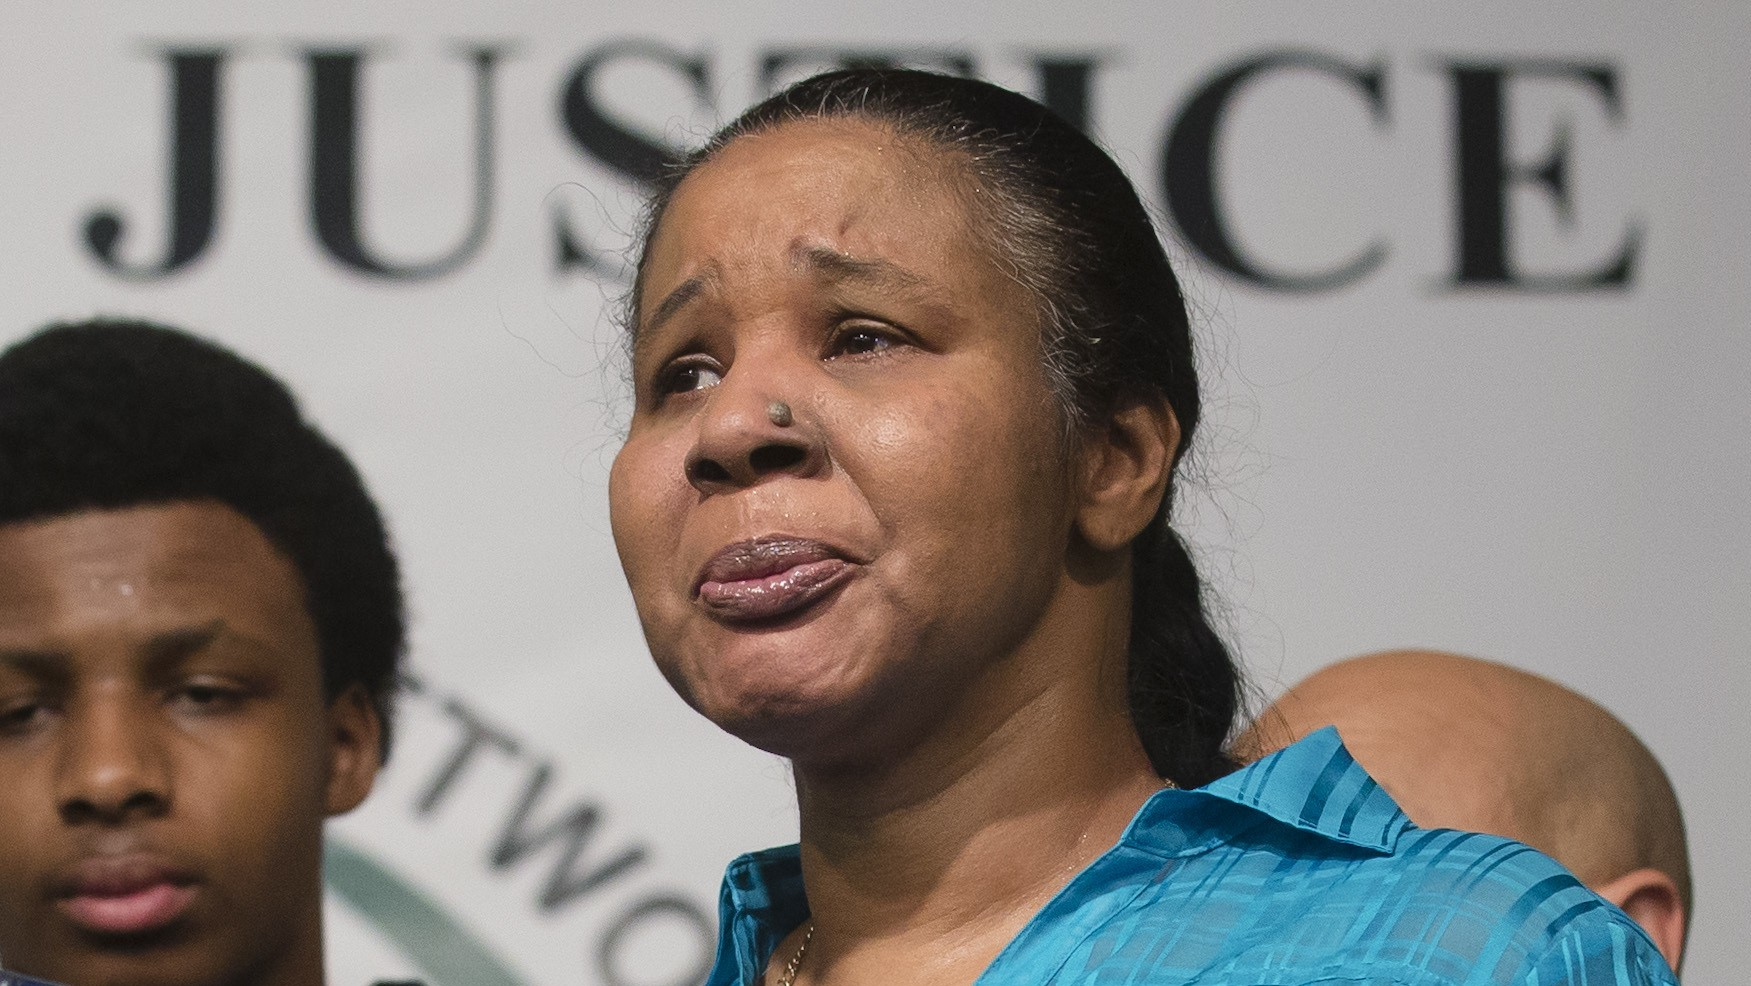 Eric Garner's Family Reportedly Accepts $5.9 Million Settlement From New York City